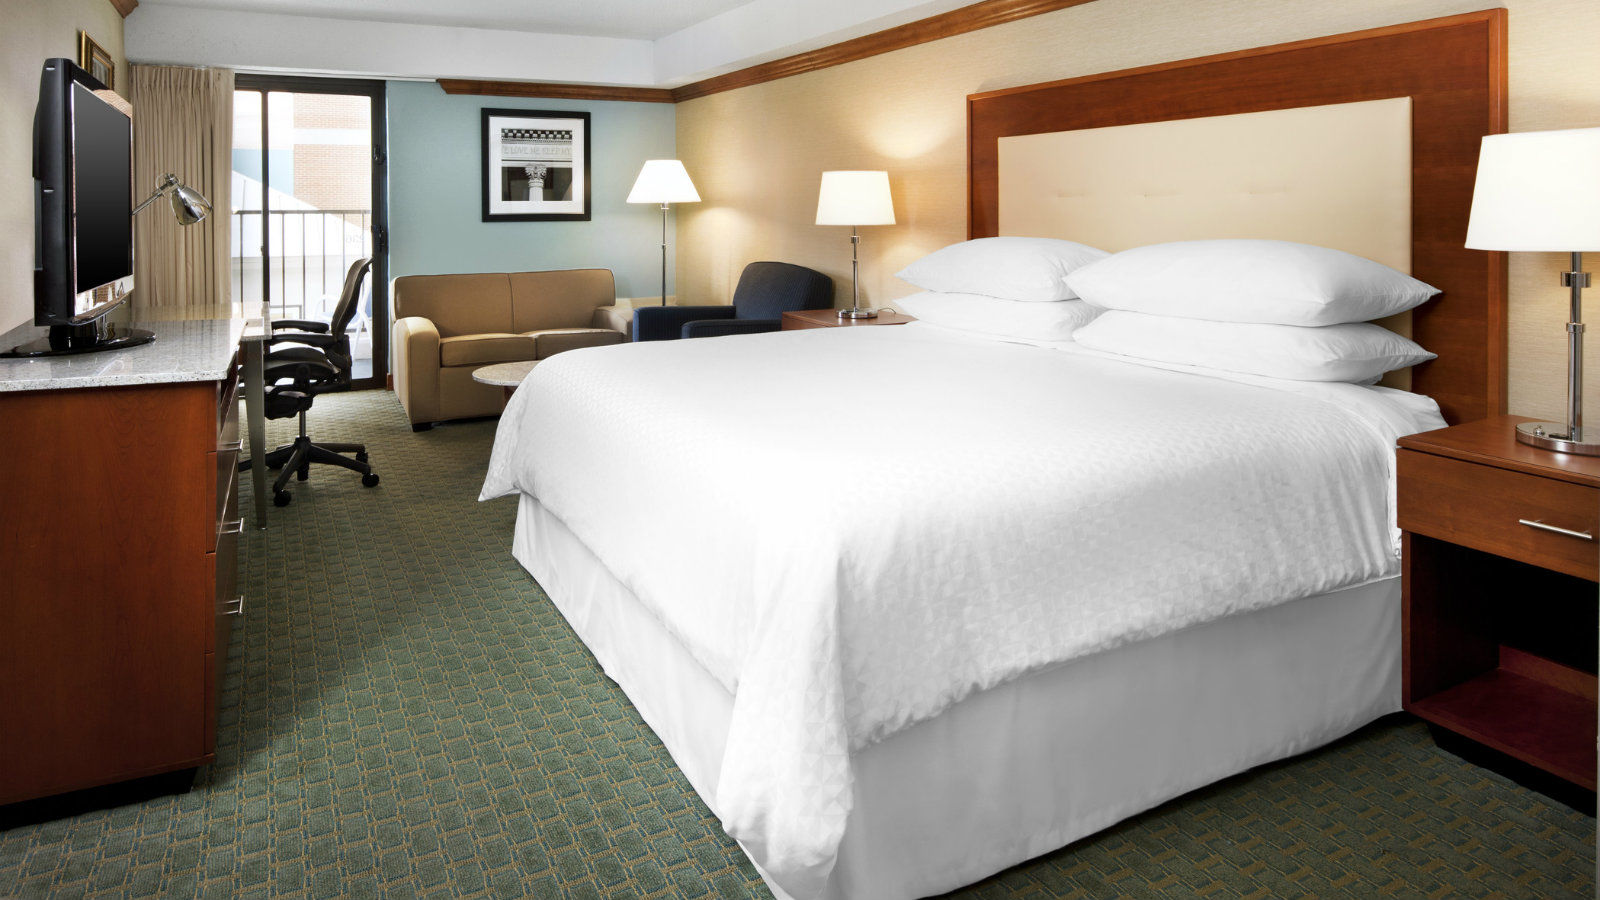 Richmond Airport Accommodations - Deluxe Room